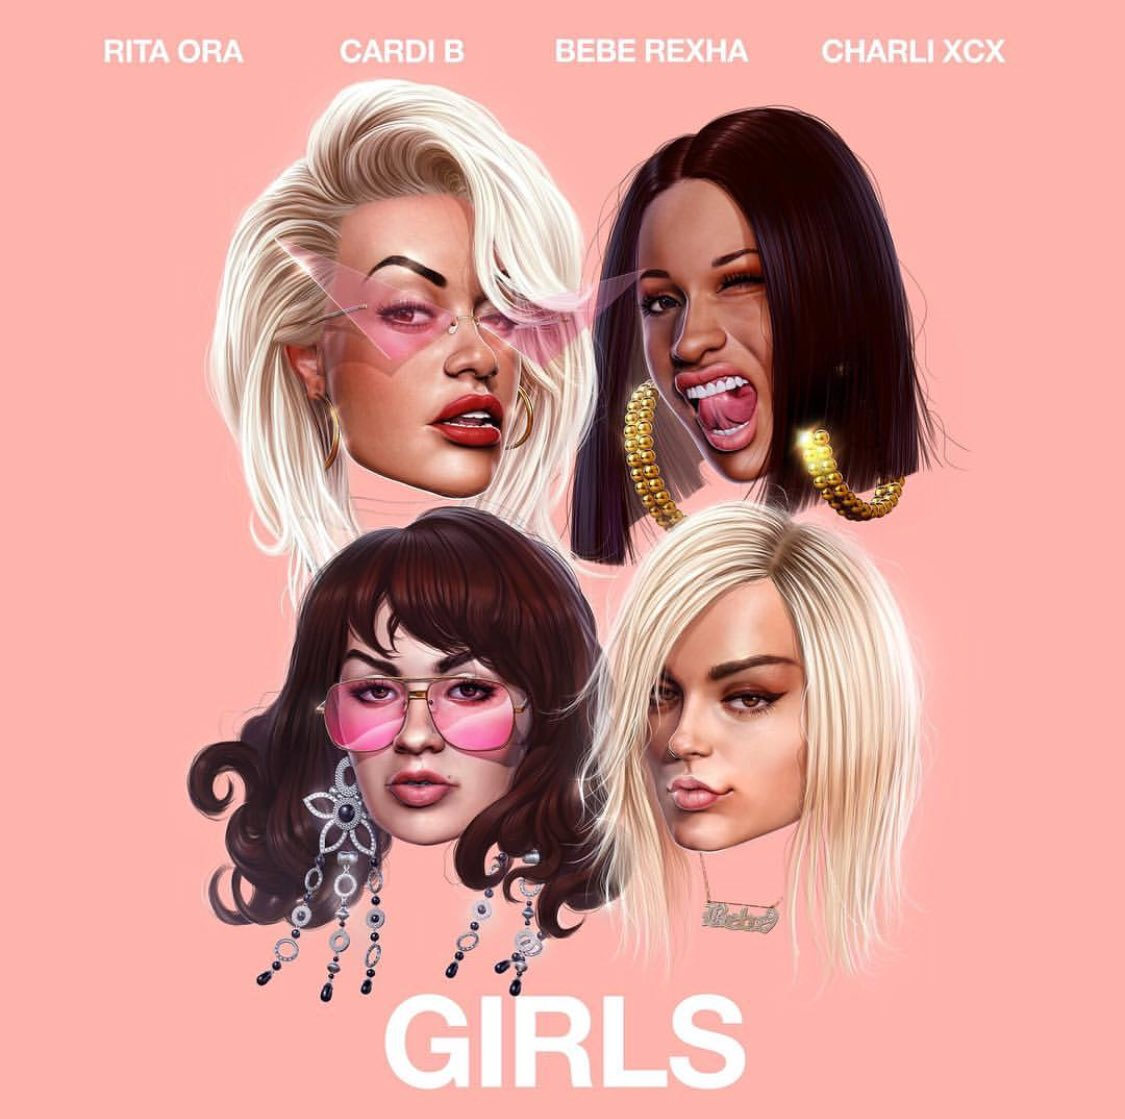 Rita Ora, Charli XCX, Bebe Rexha & Cardi B Team Up For 'Girls'